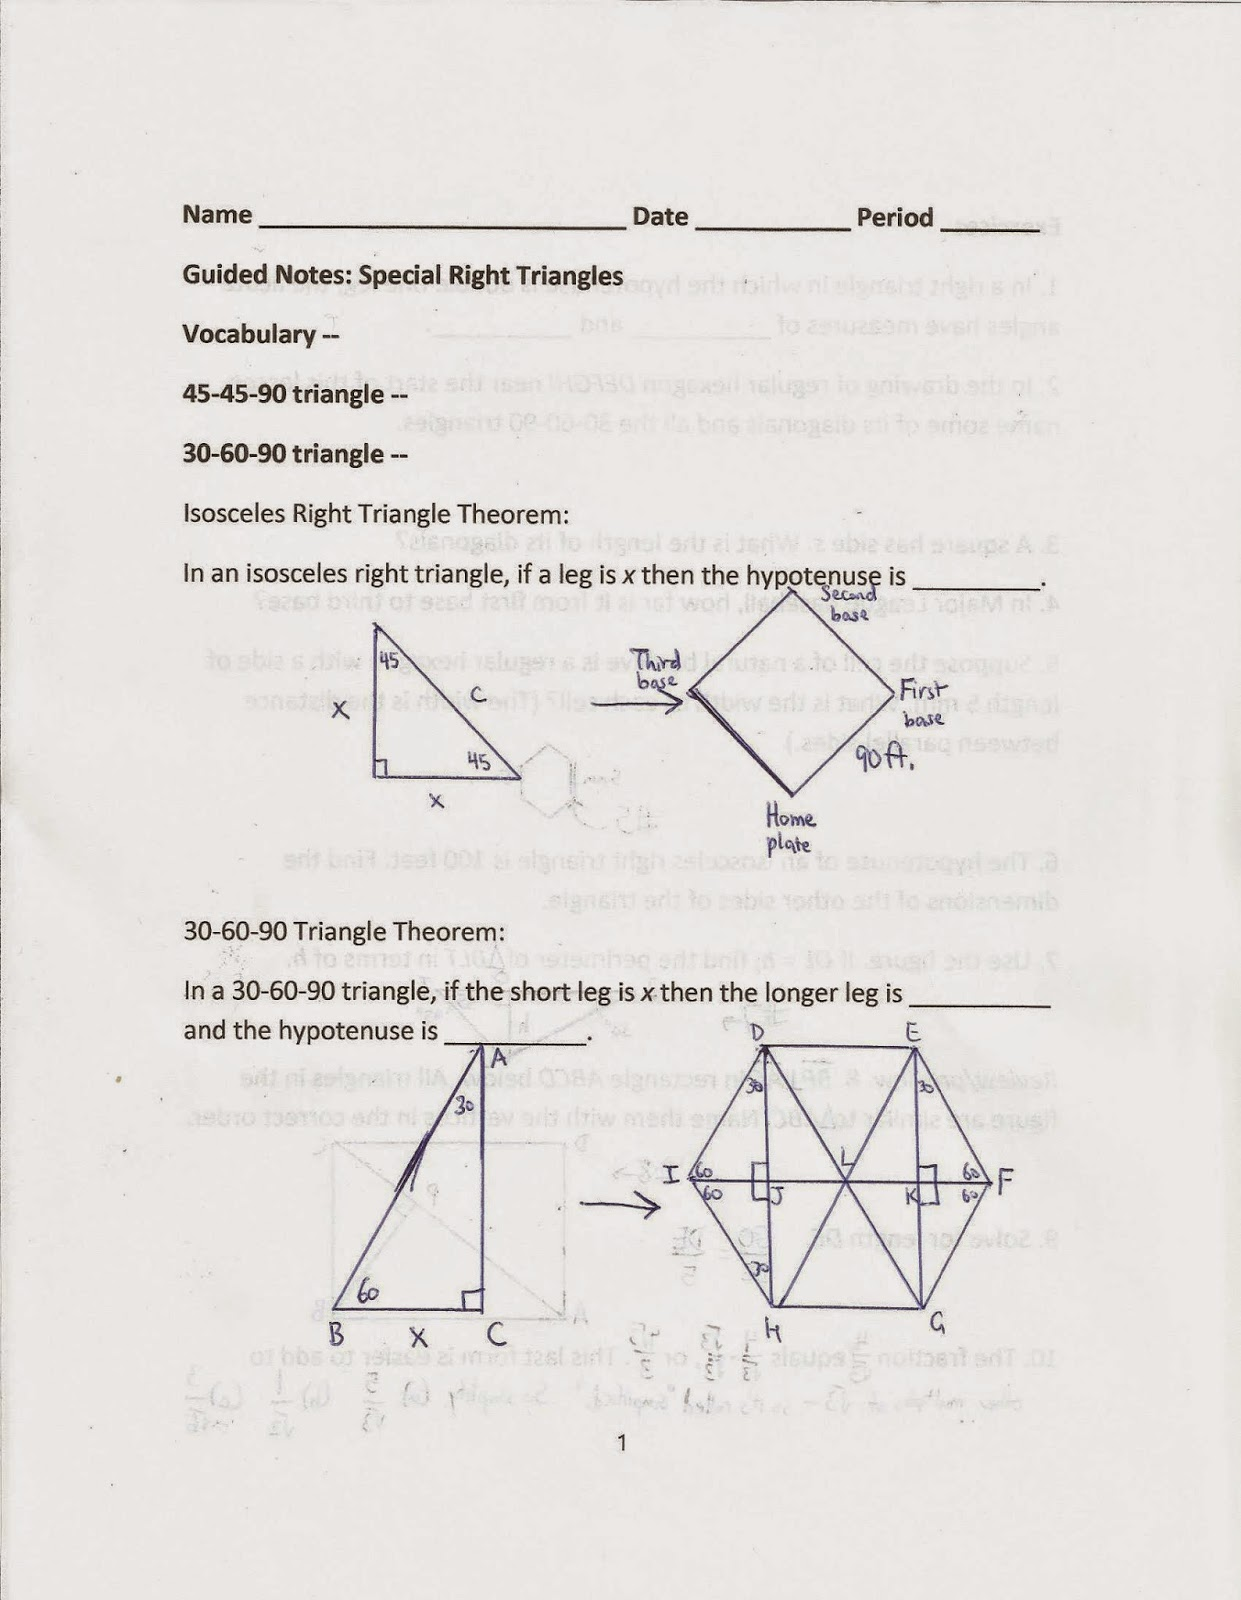 Geometry Common Core Style Lesson 14 1 Special Right